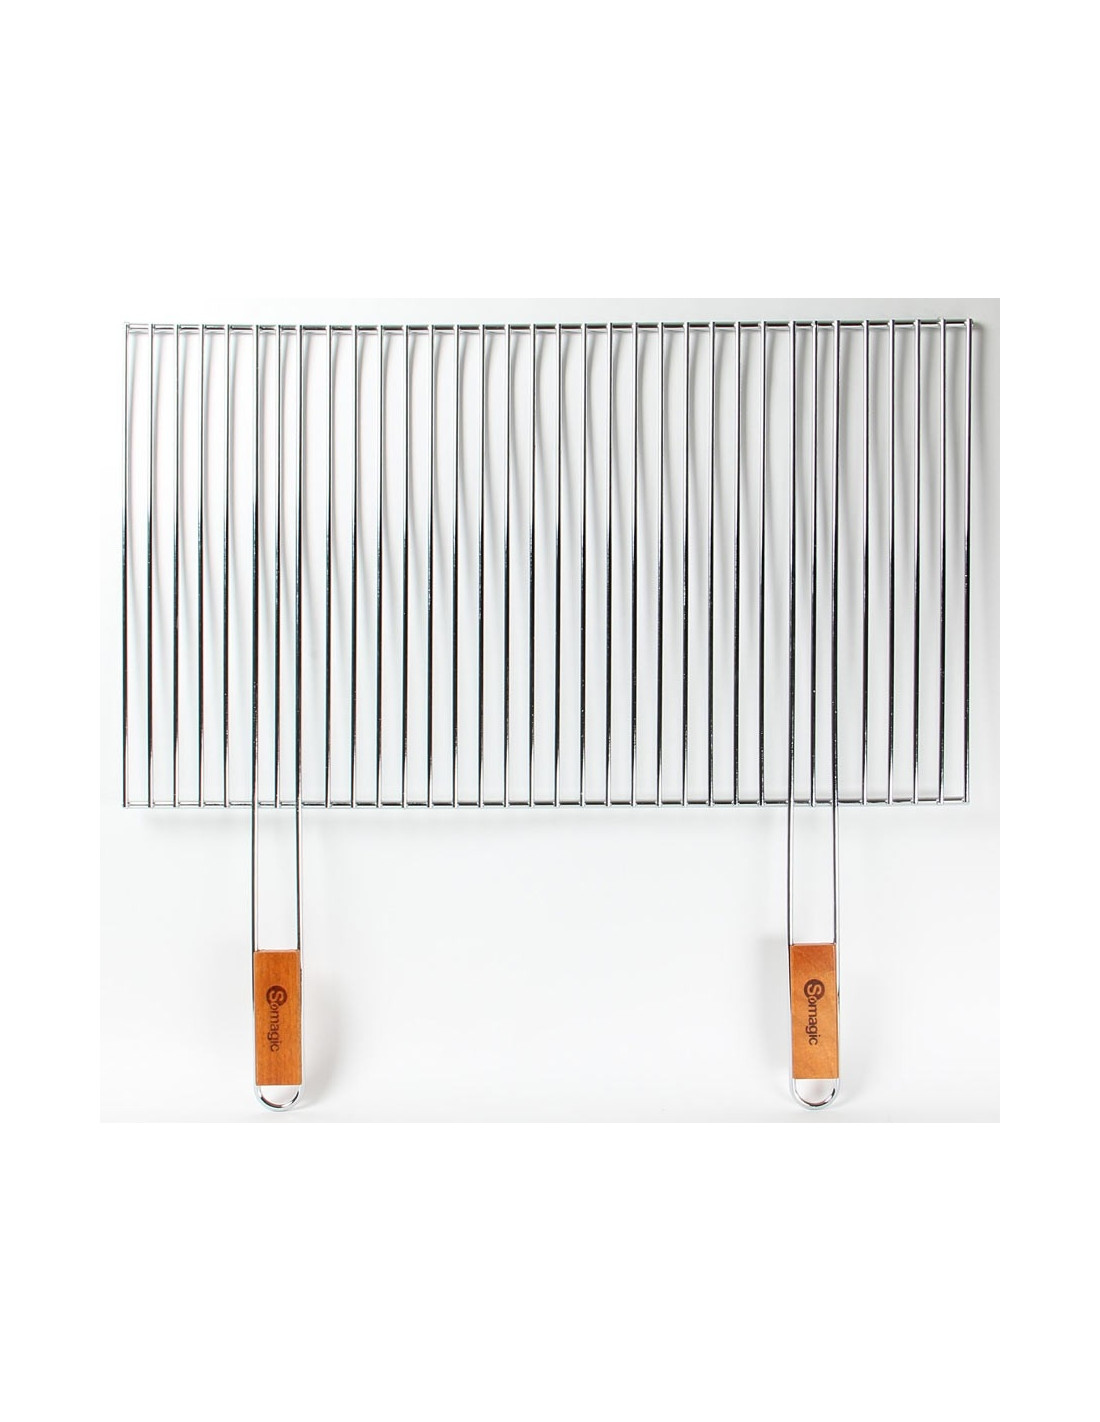 Grille decoupable pour barbecue 70x40cm somagic - Grille barbecue decoupable ...